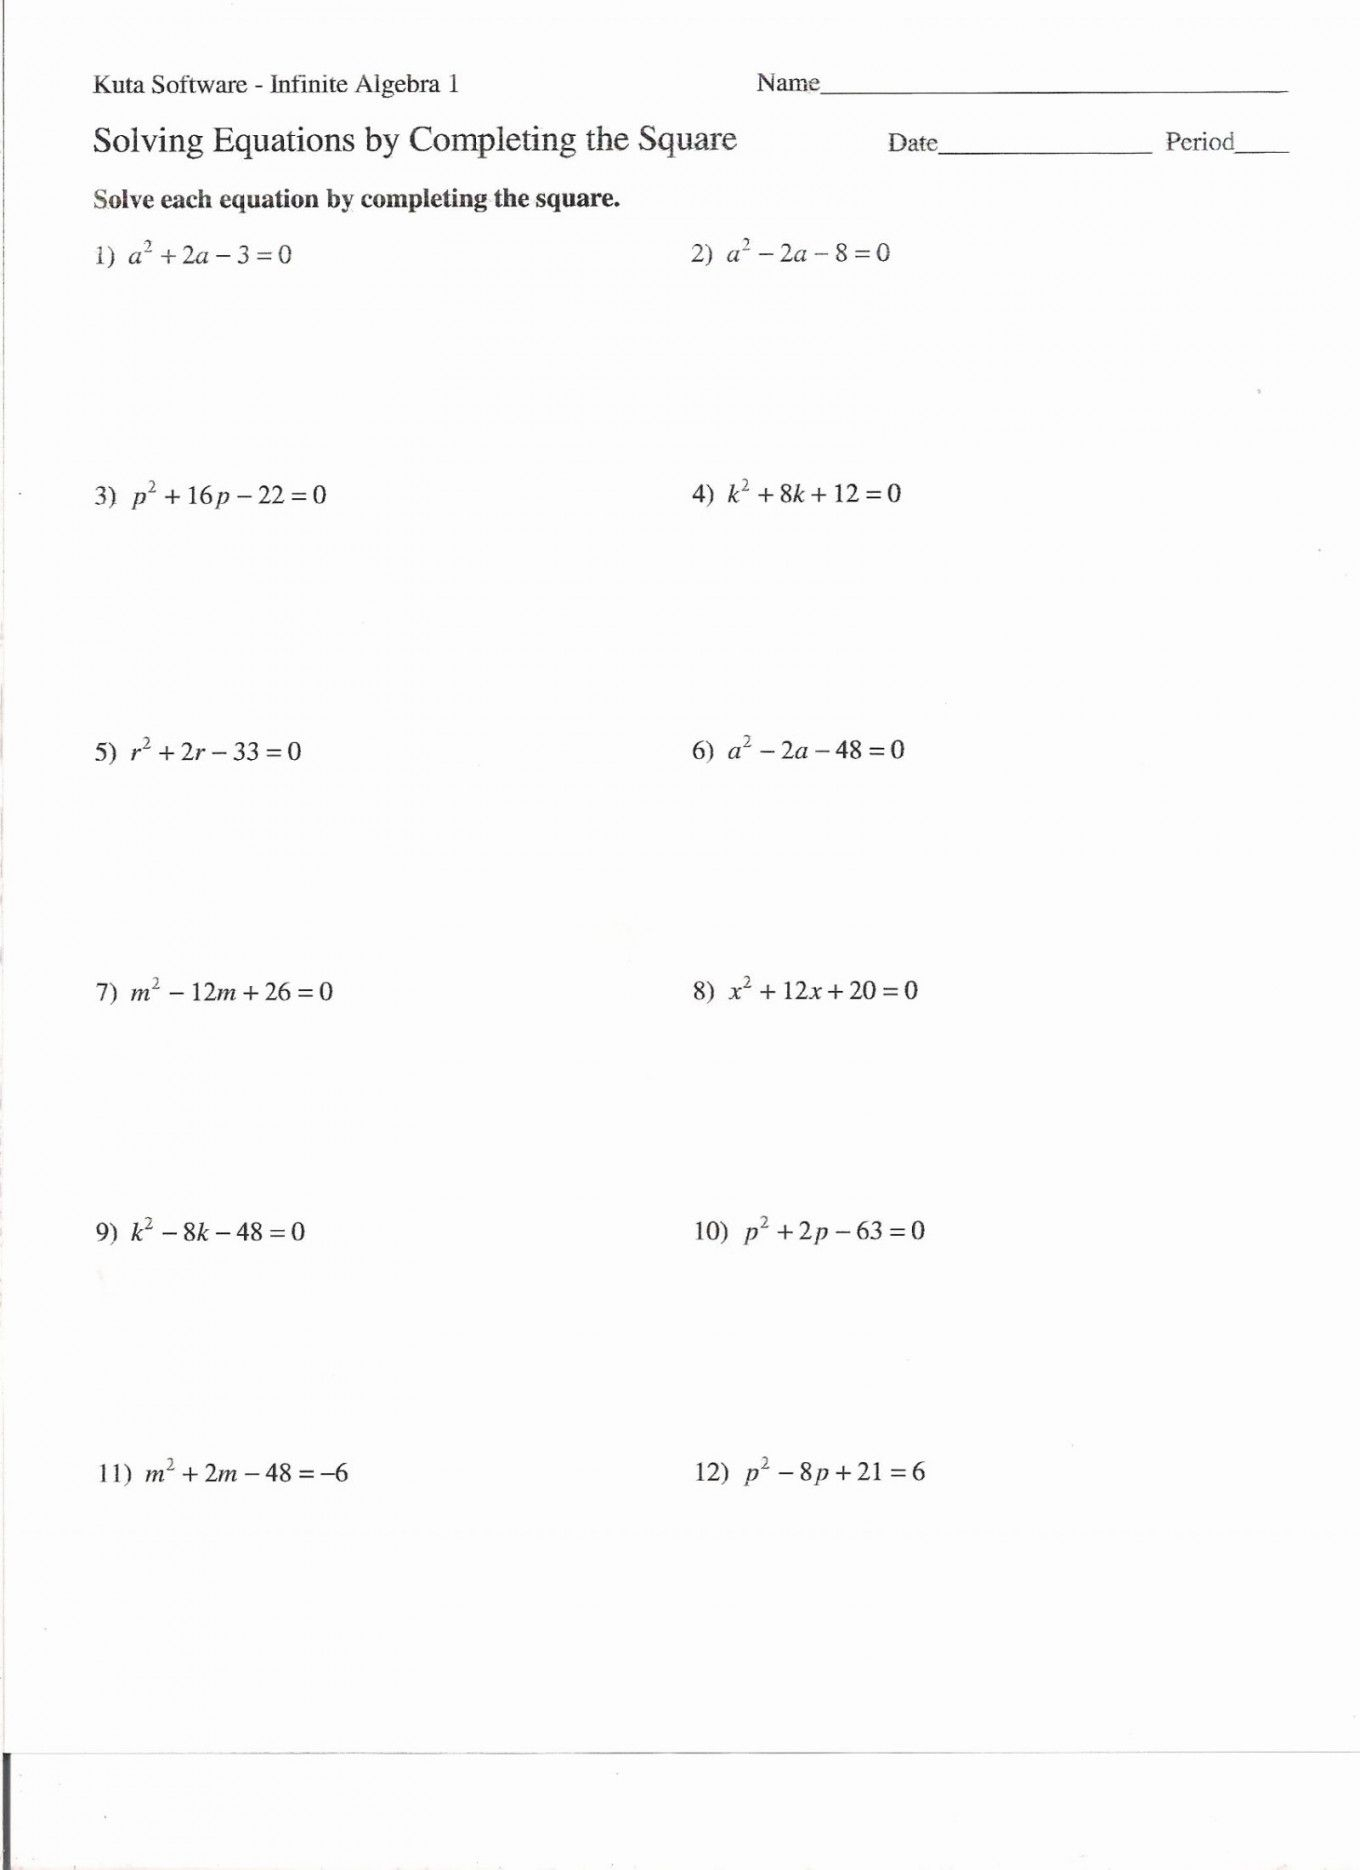 Distributive Property Worksheets 5Th Grade | Lostranquillos - Free Printable Distributive Property Worksheets